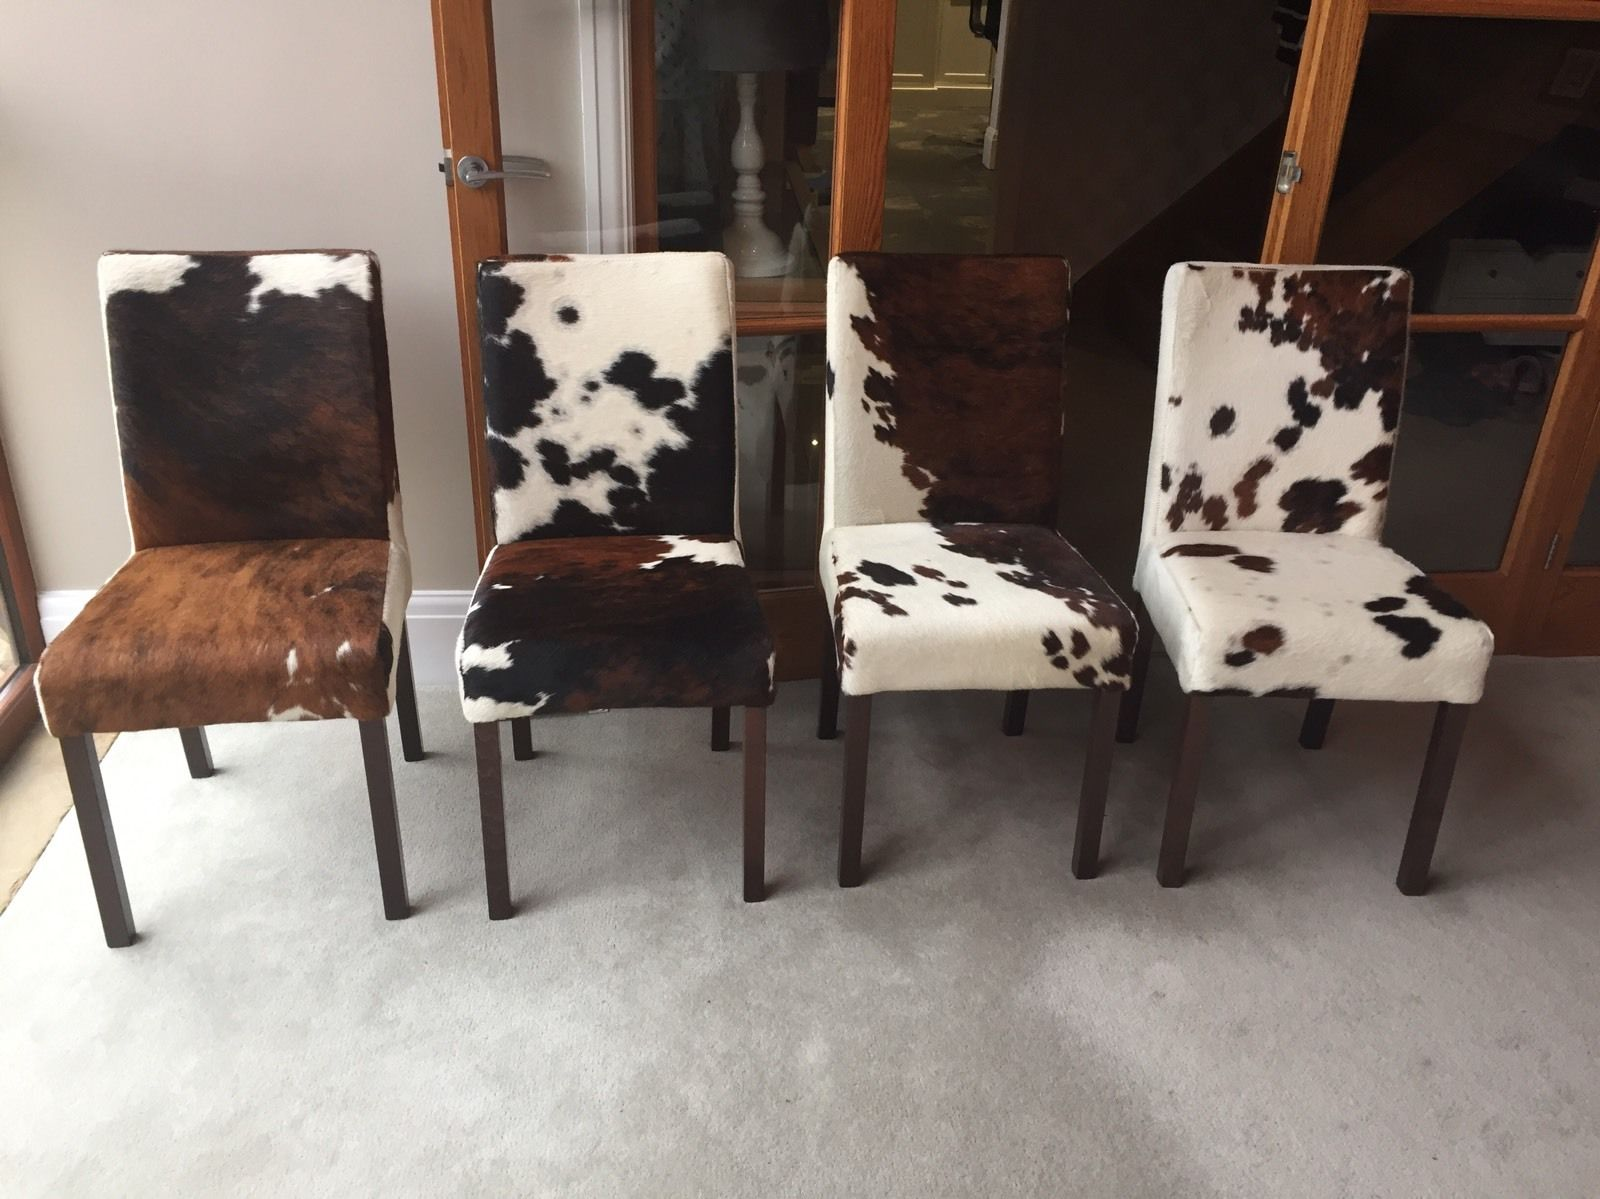 lambswool recliner chair covers australia makeup chairs india cow hide dining american